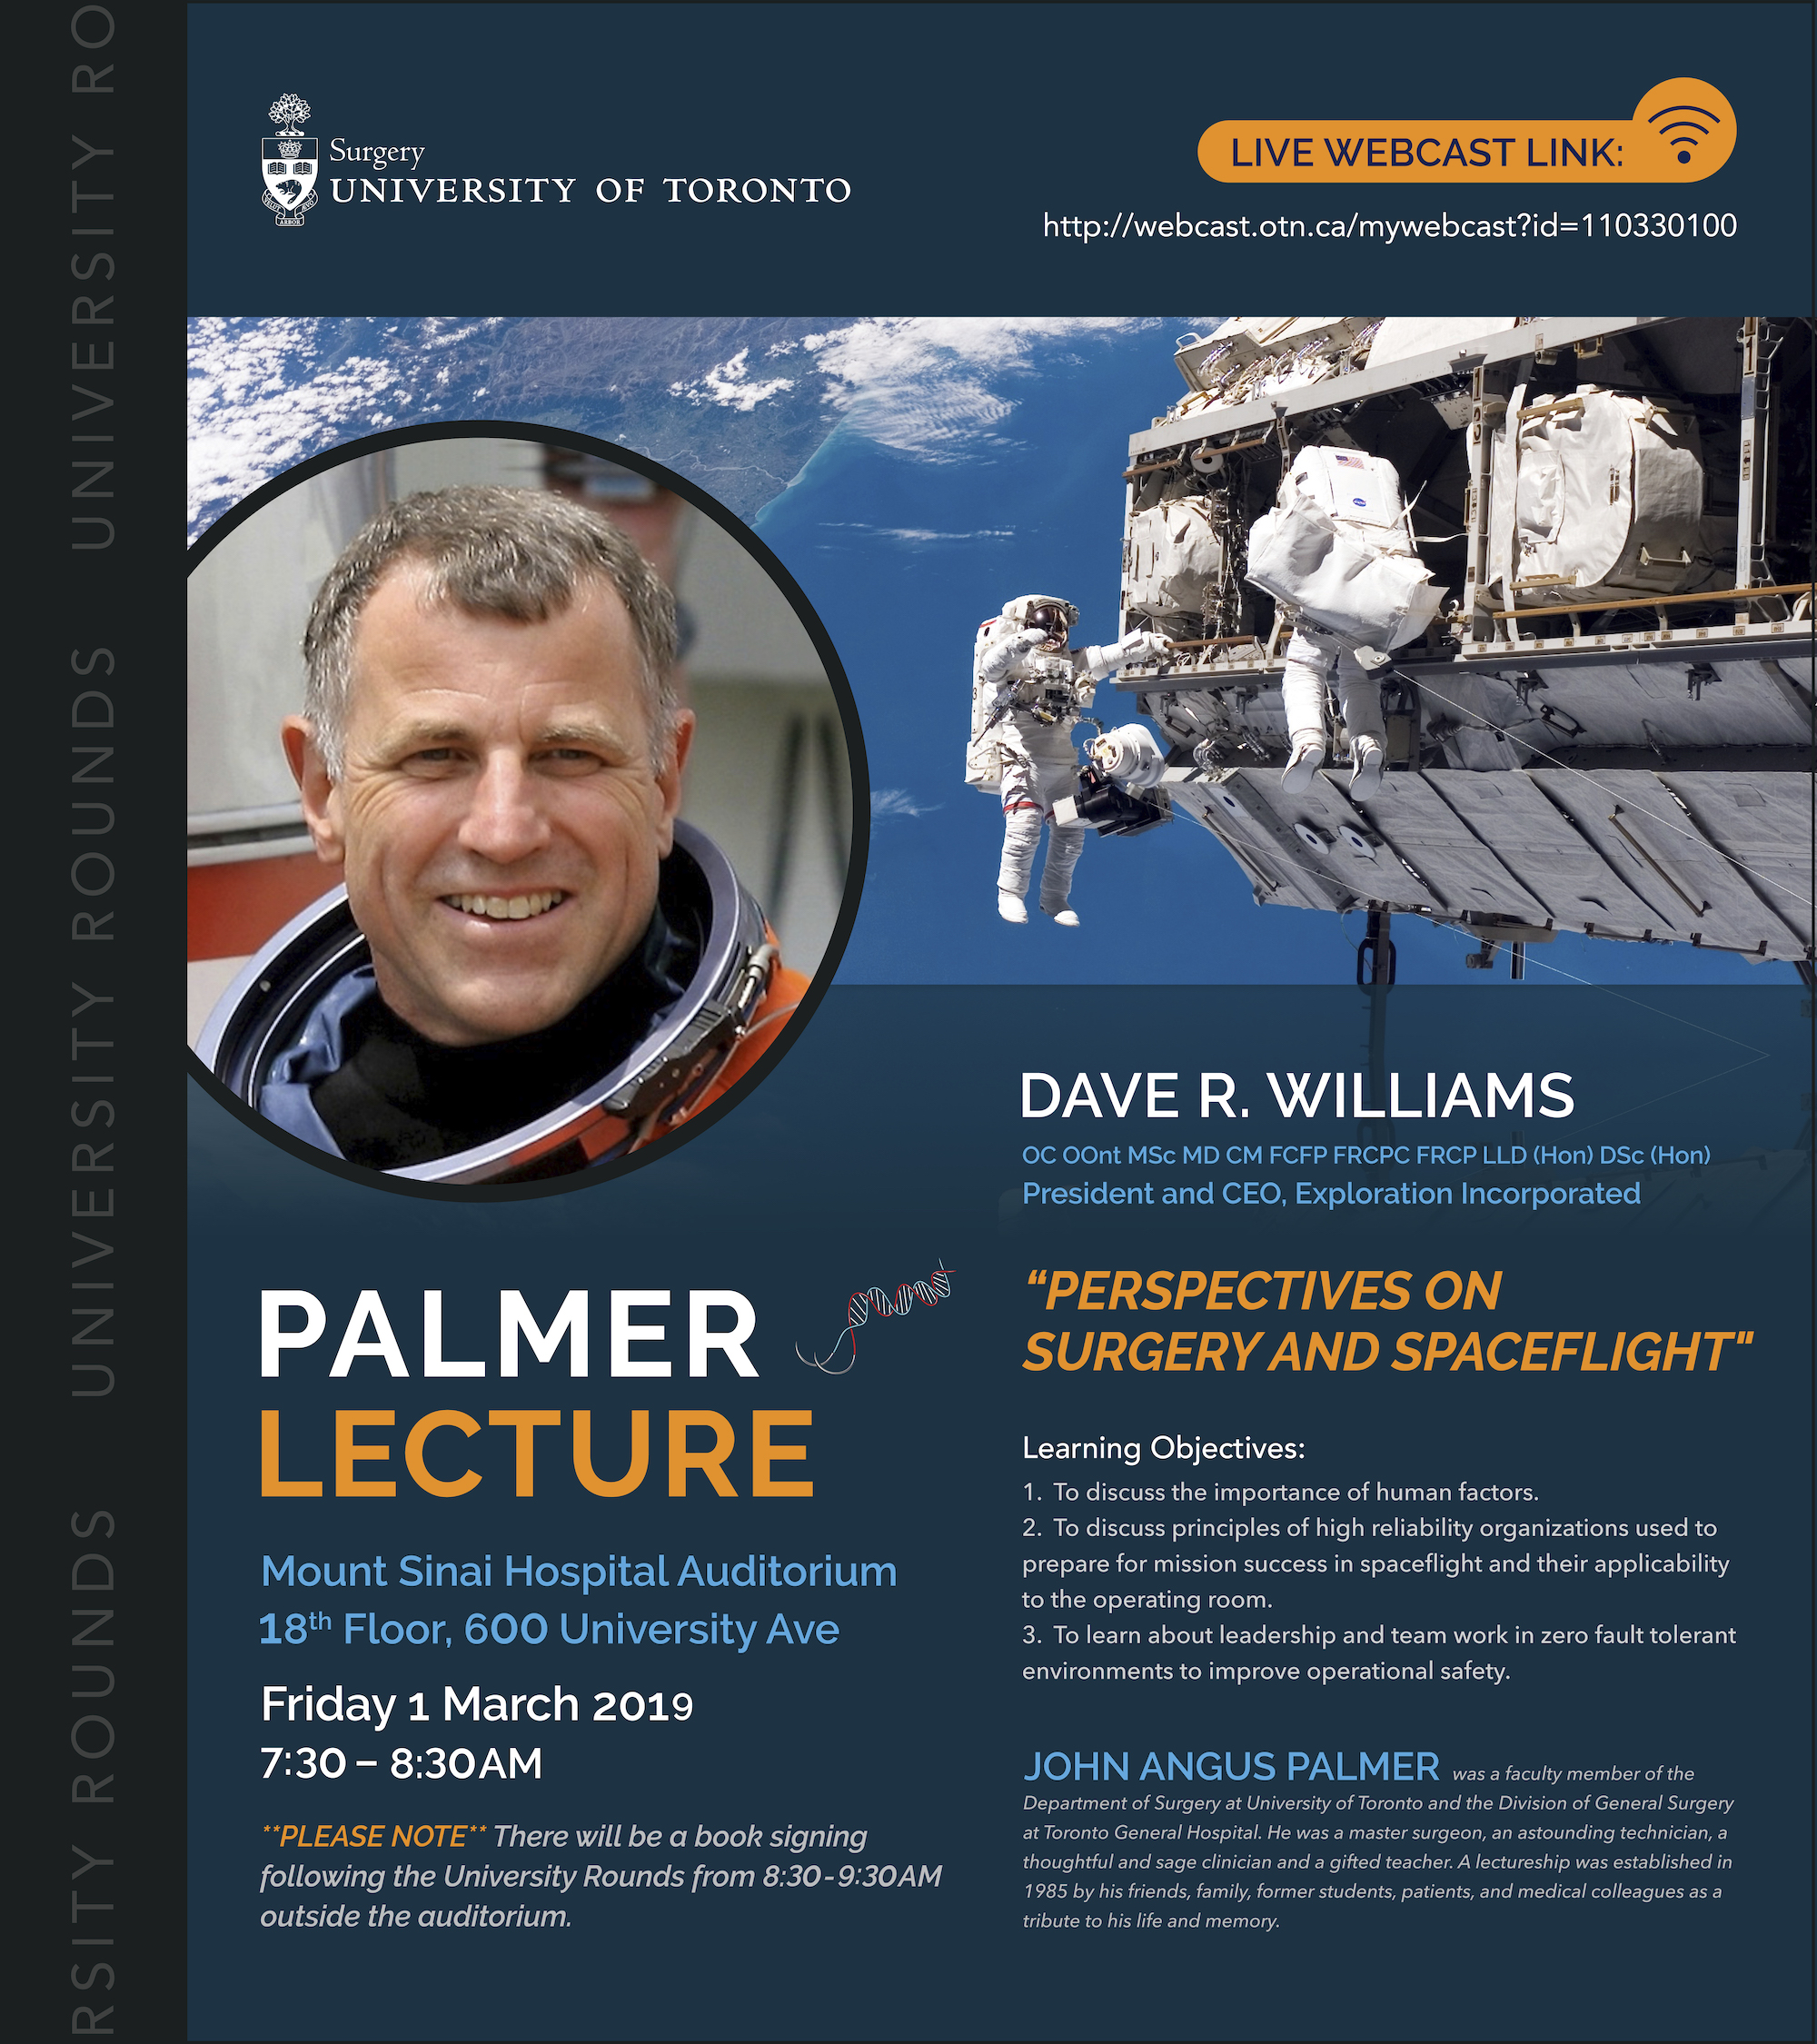 Palmer Lecture Poster